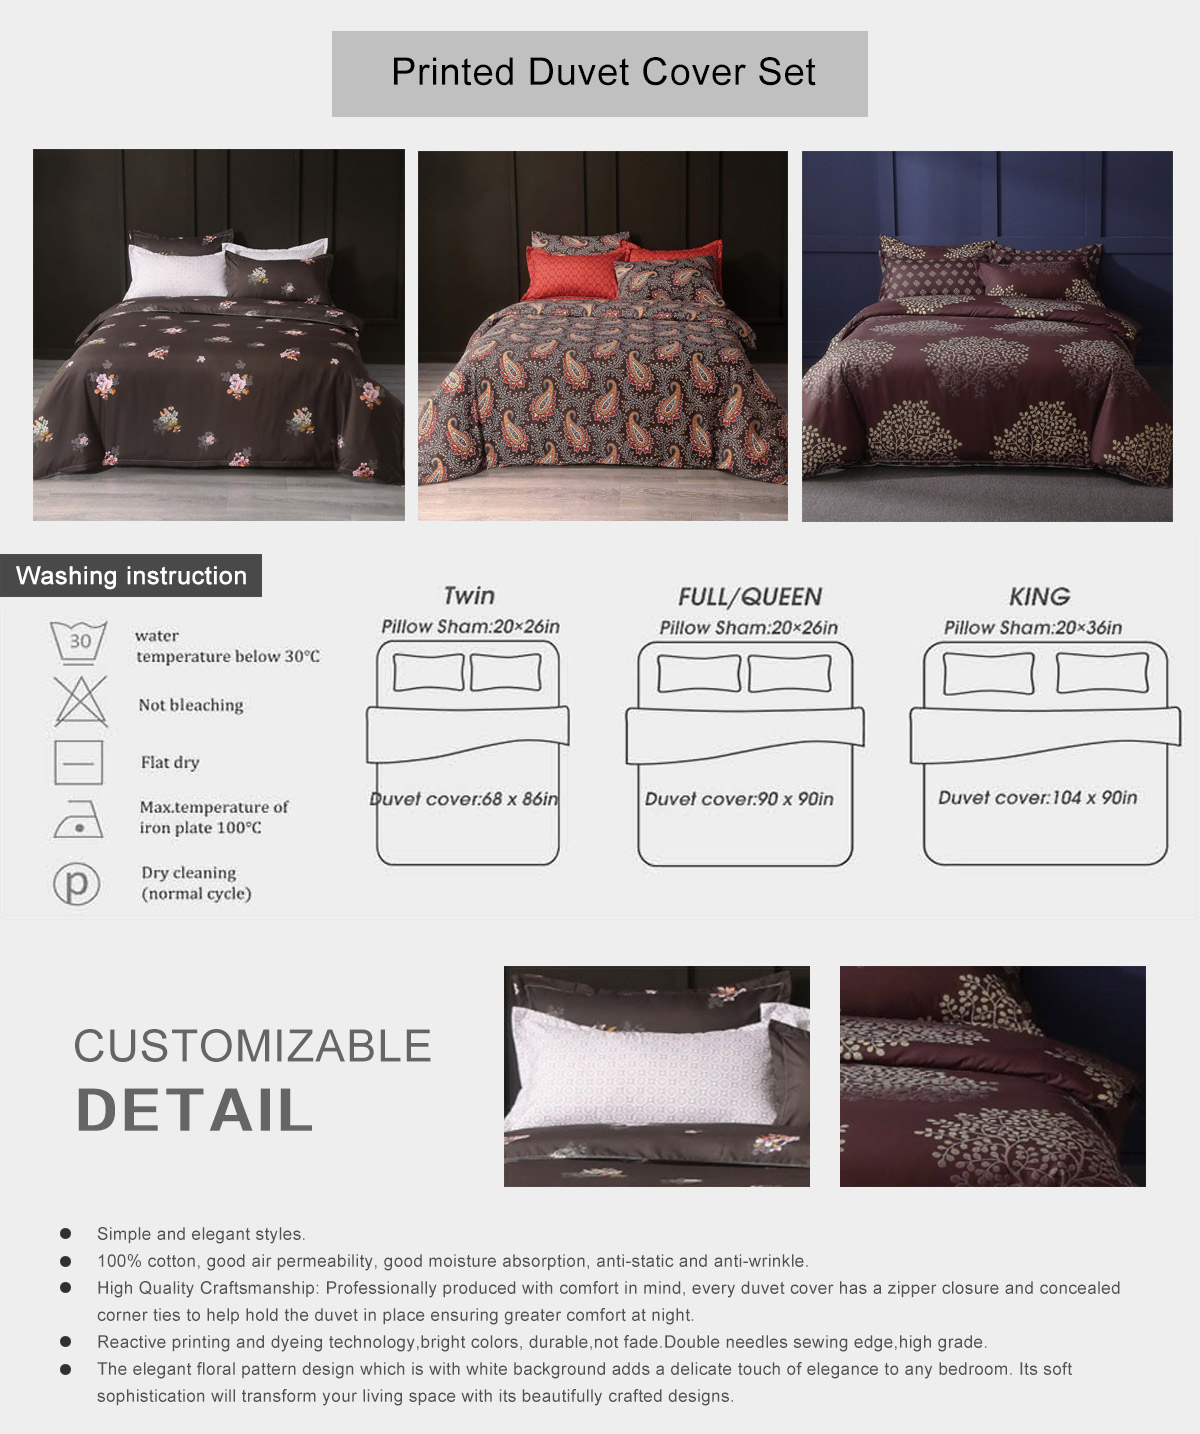 Printed Duvet Cover Set